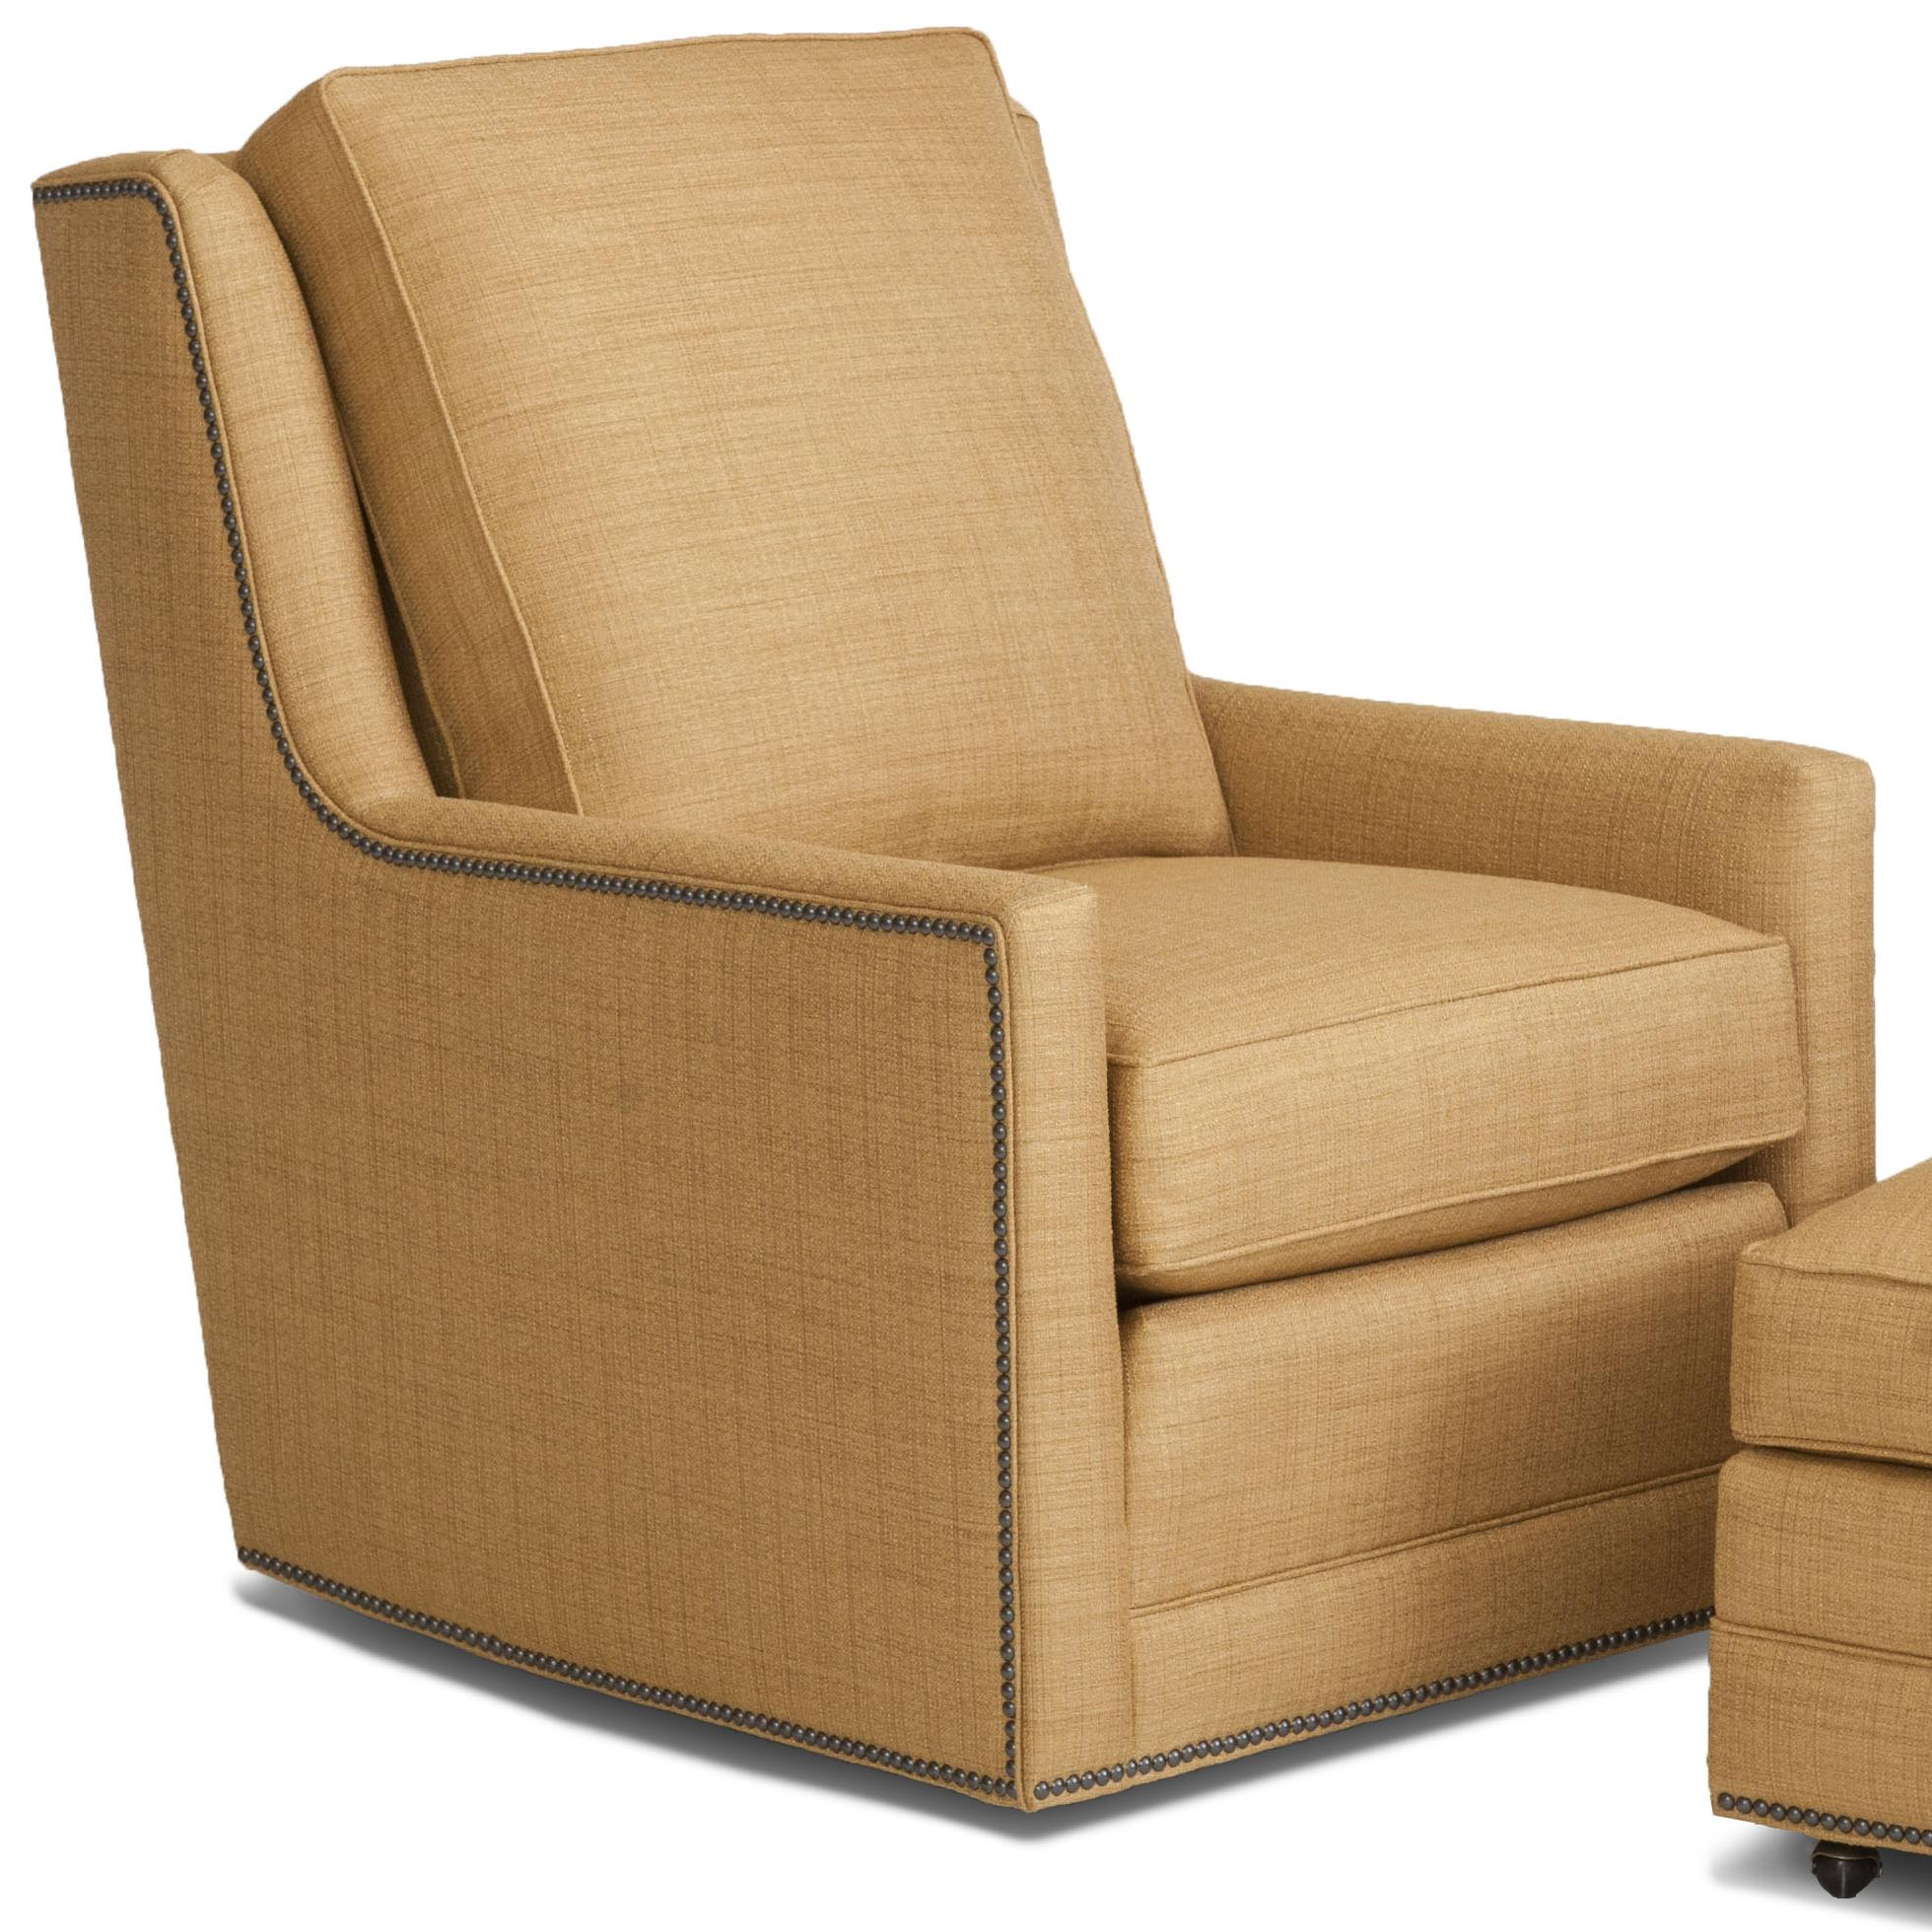 Accent Chairs and Ottomans SB Swivel Chair by Smith Brothers at O'Dunk & O'Bright Furniture